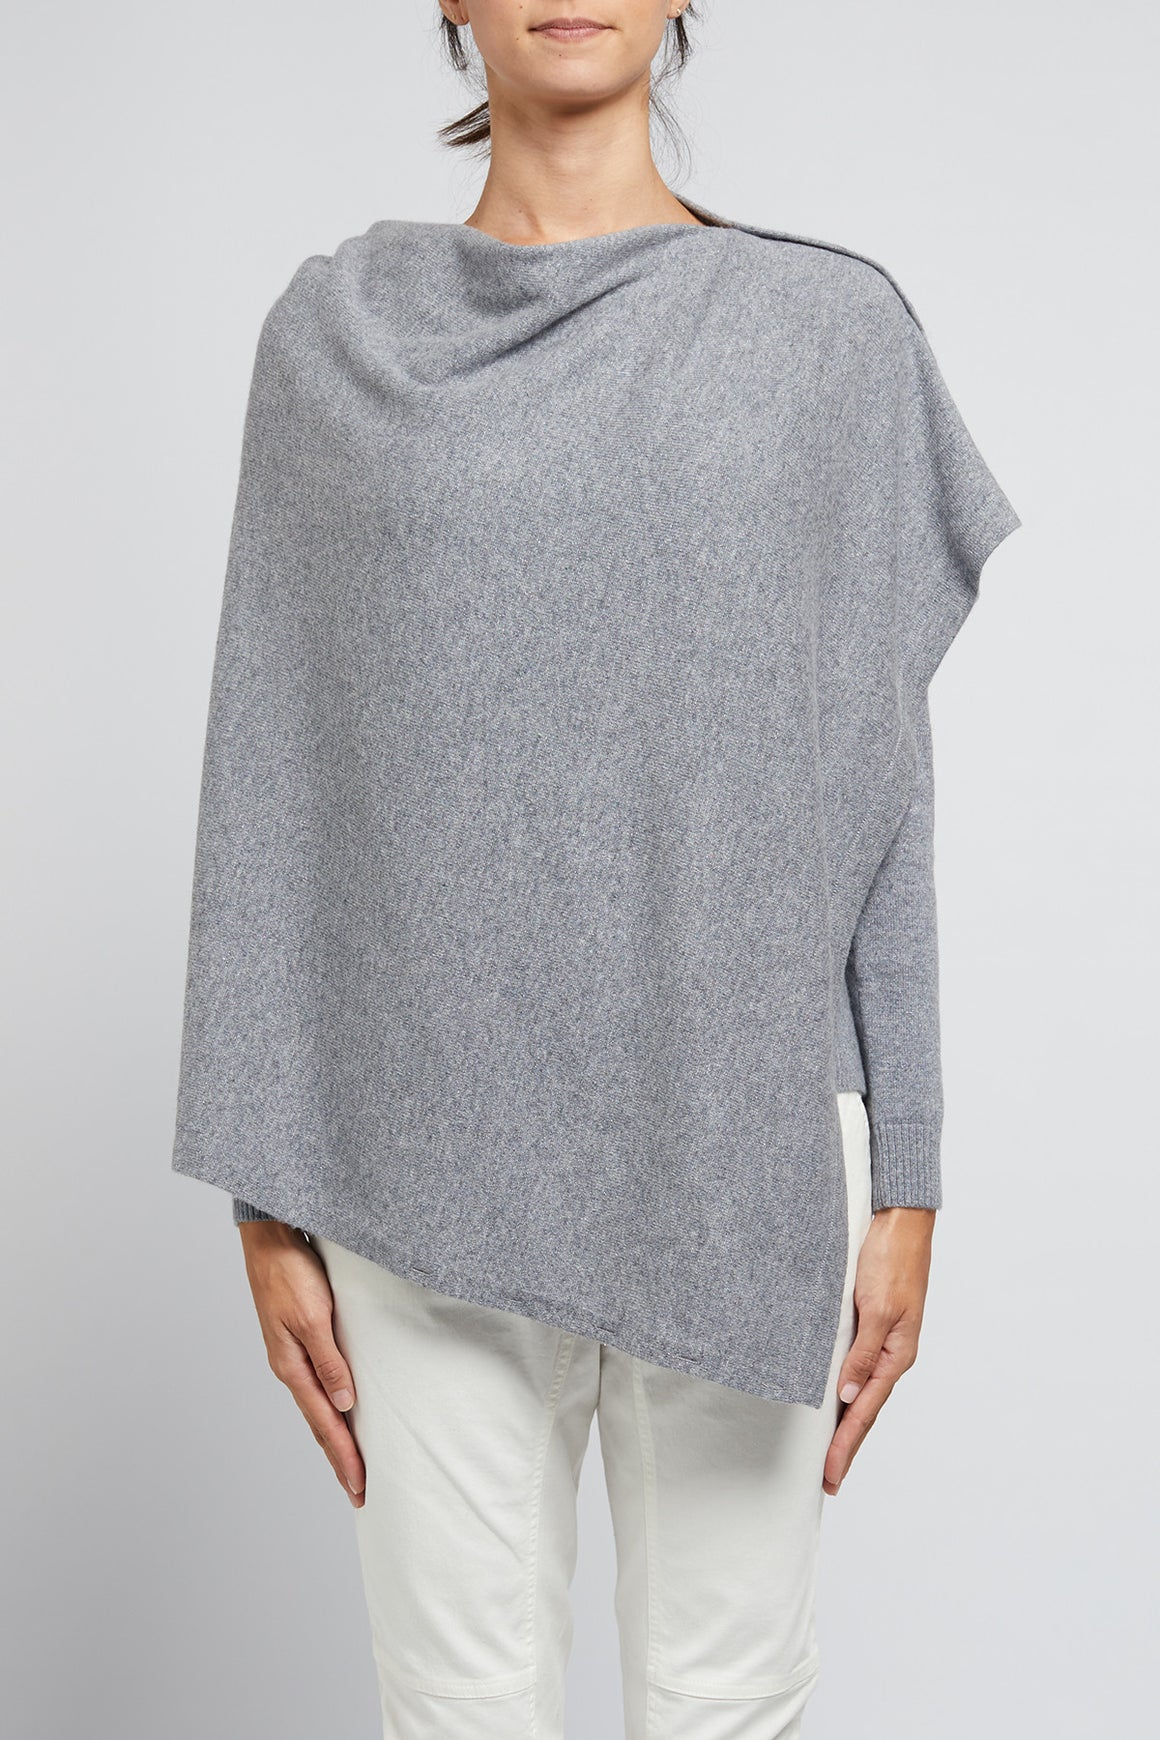 Cable Cashmere Button Poncho -Silver | Shop Cable at Wallace and Gibbs